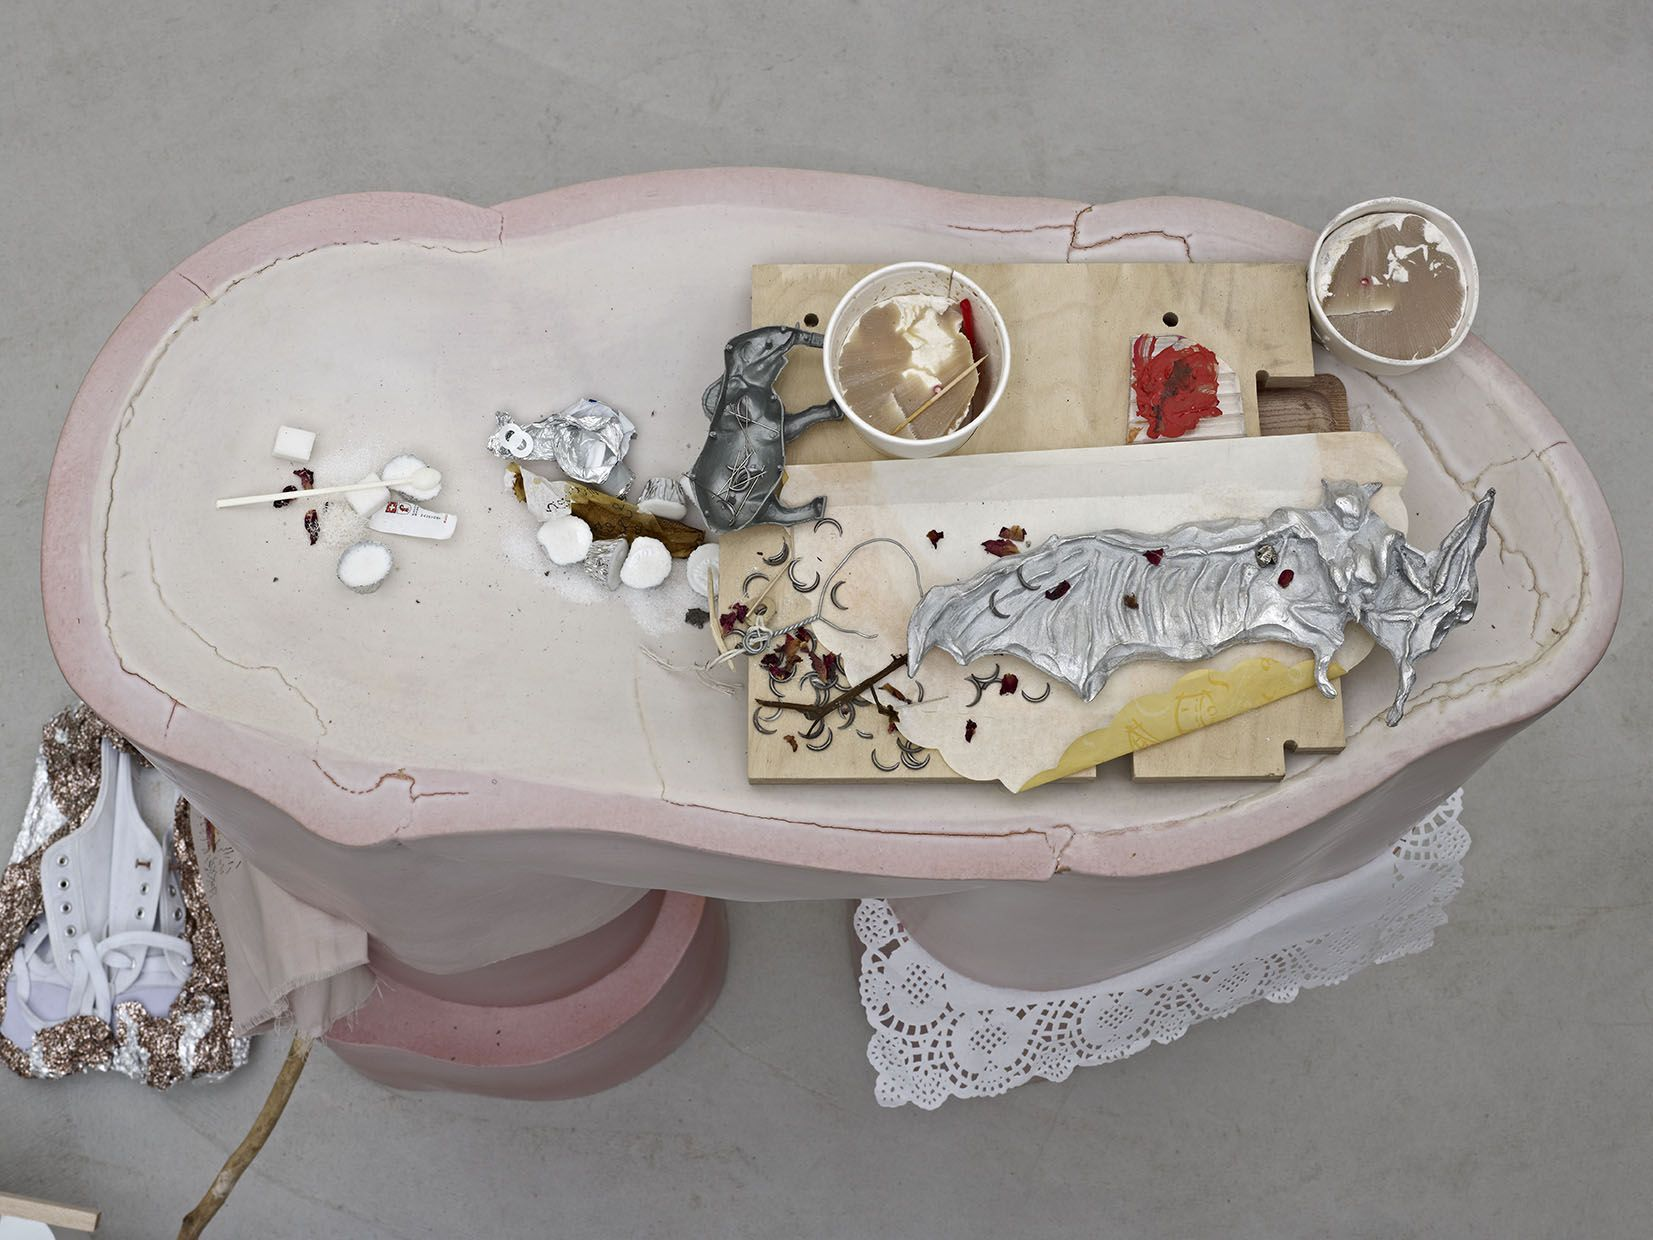 Helen Marten, Candy Mandible Mrs, 2014 (detail)